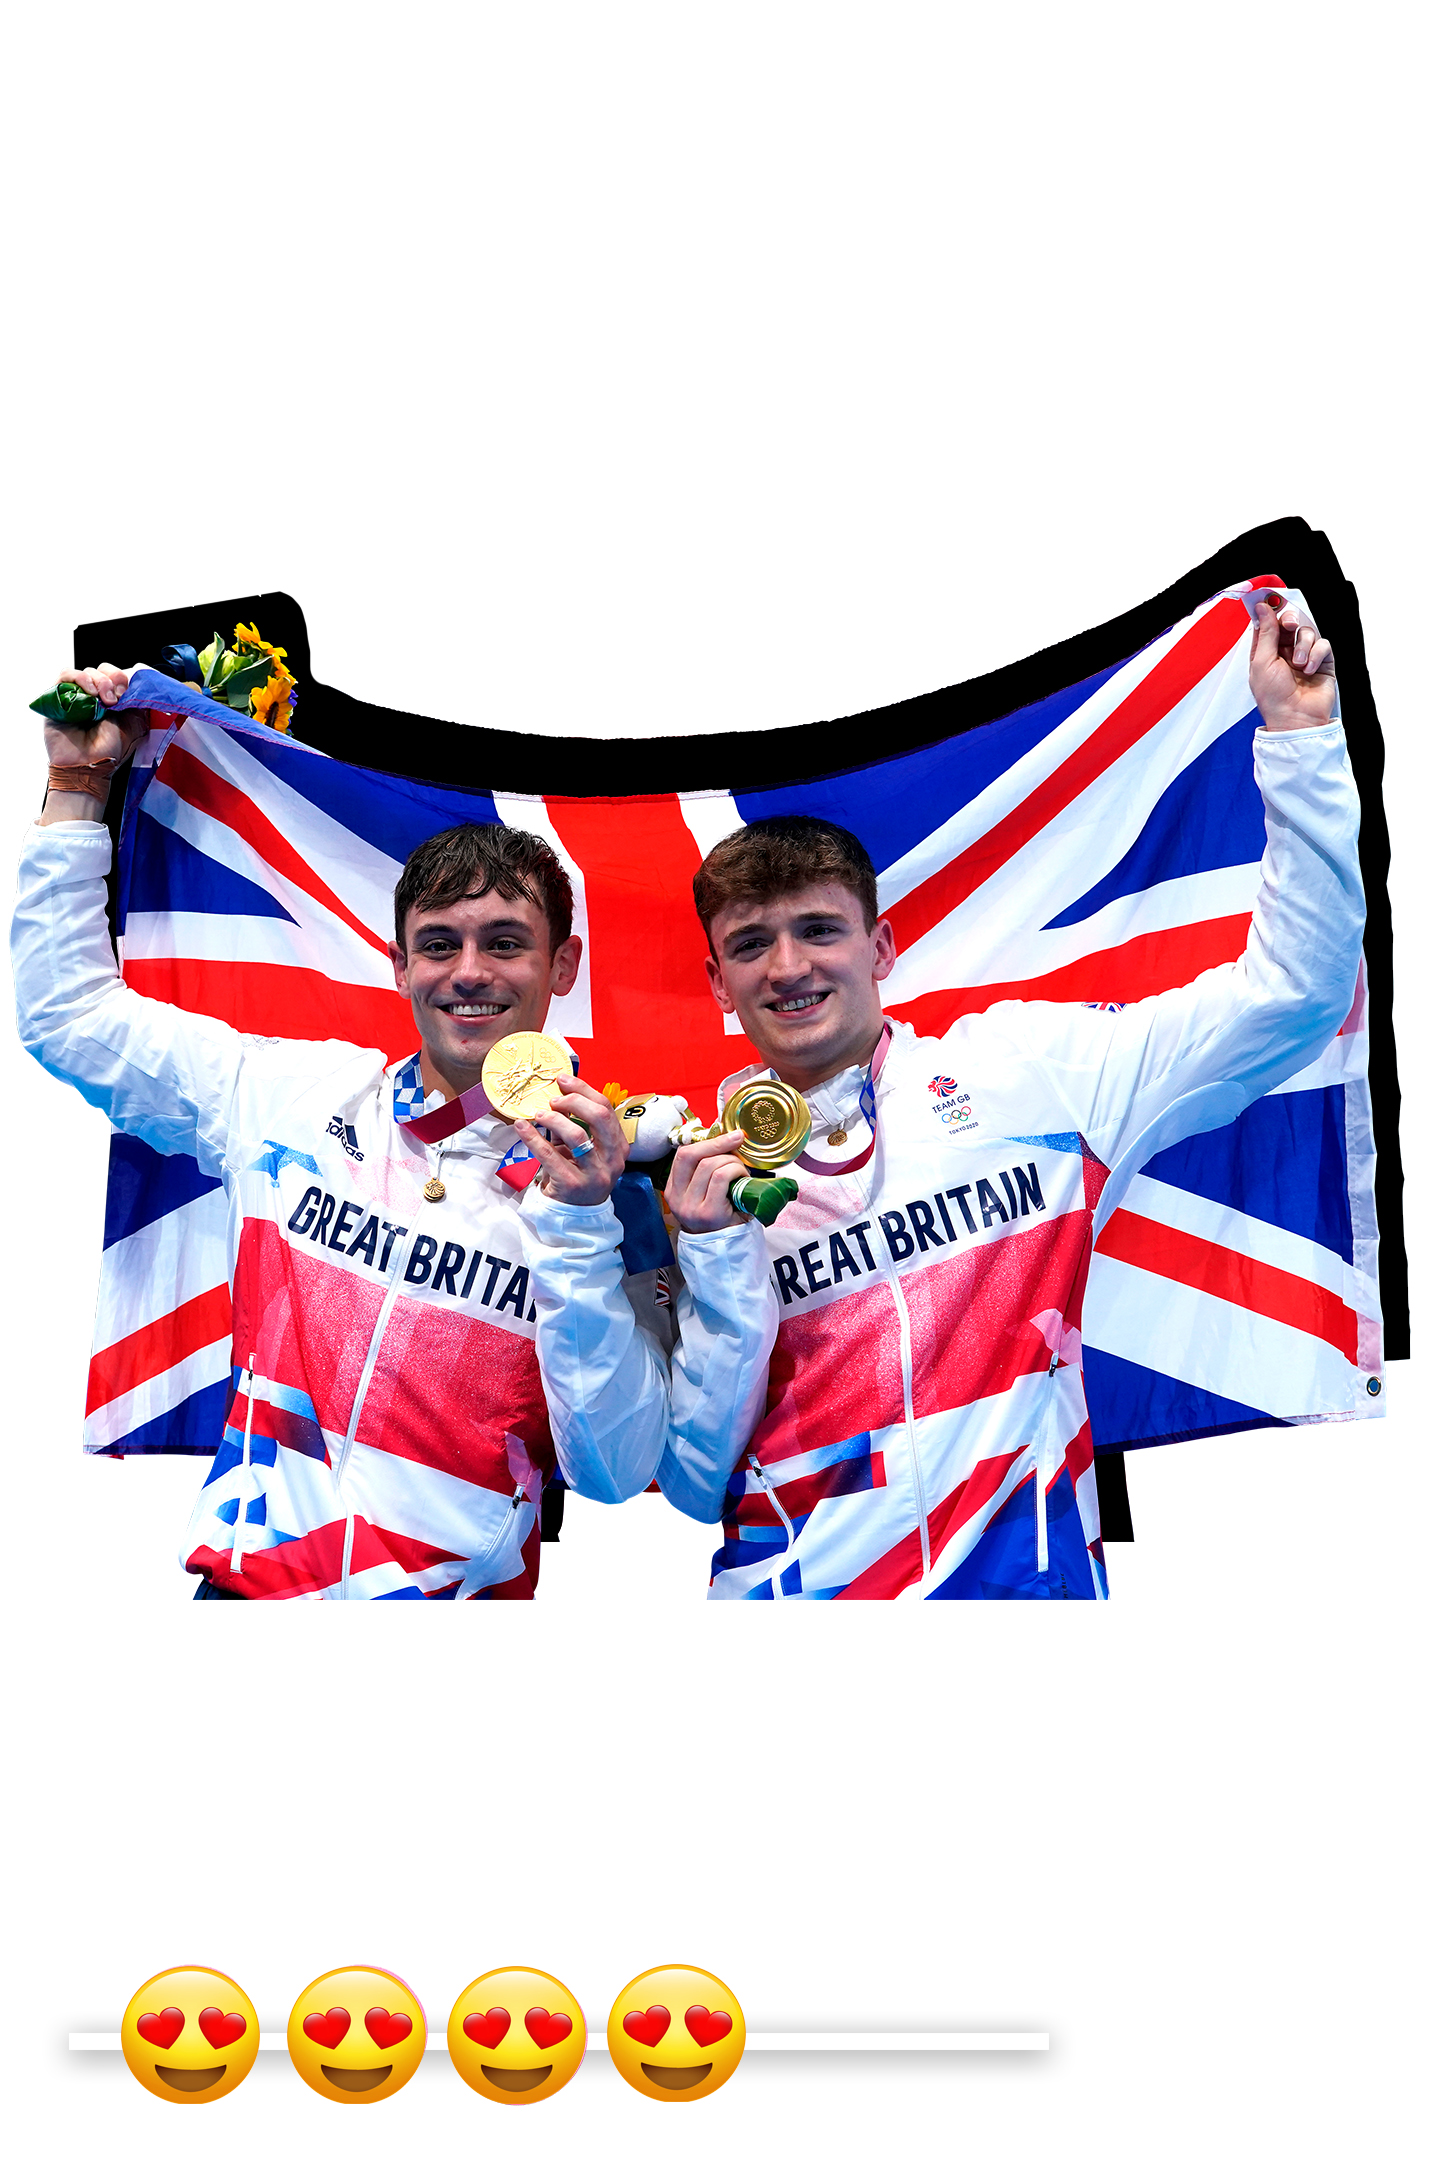 Tom Daley (left) and Matty Lee WWD Report Card: Going for Gold